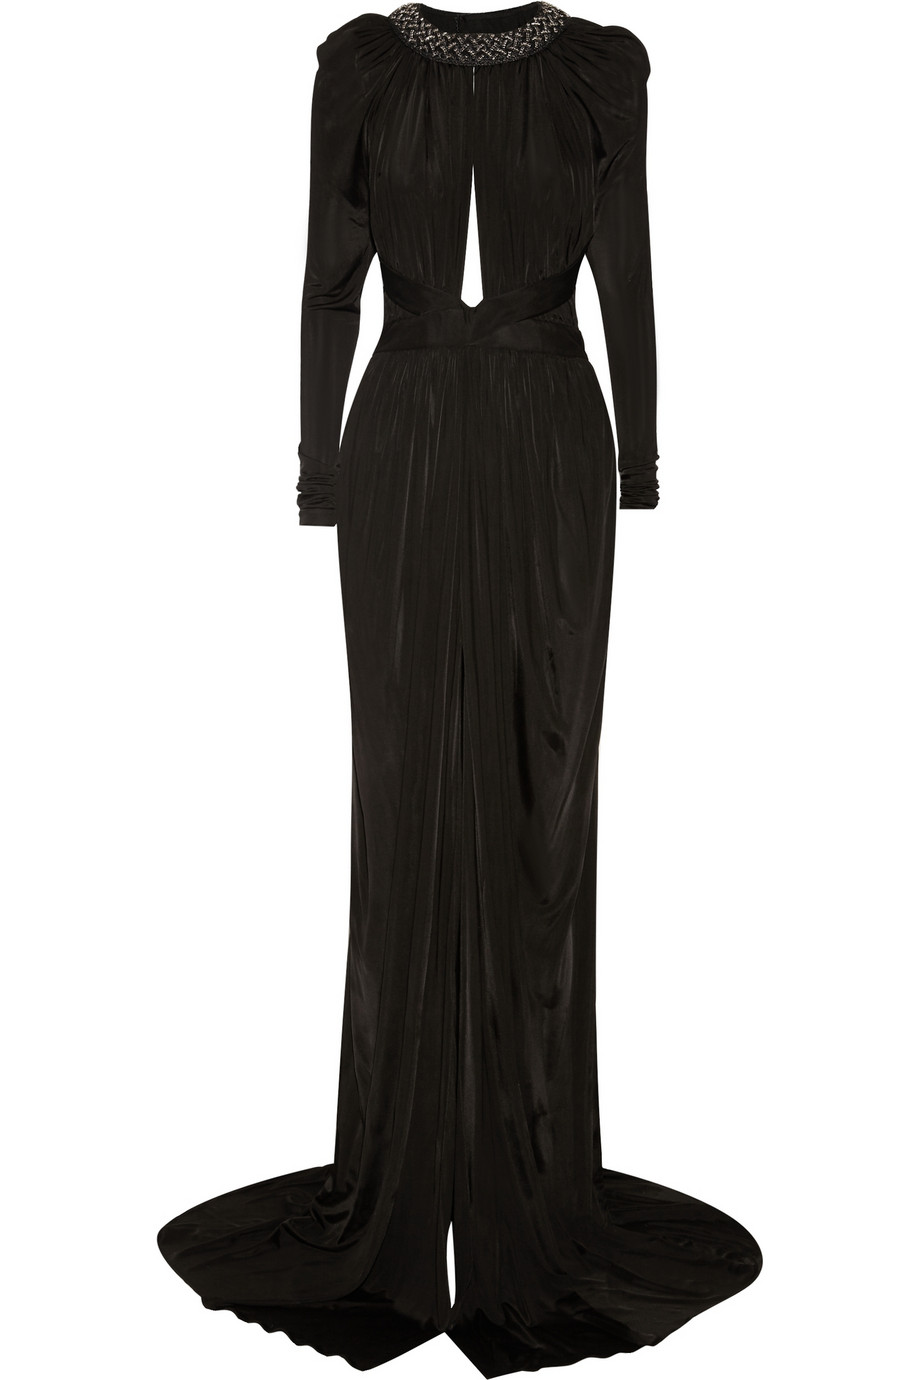 Balmain embellished sateen gown – 60% at the outnet.com